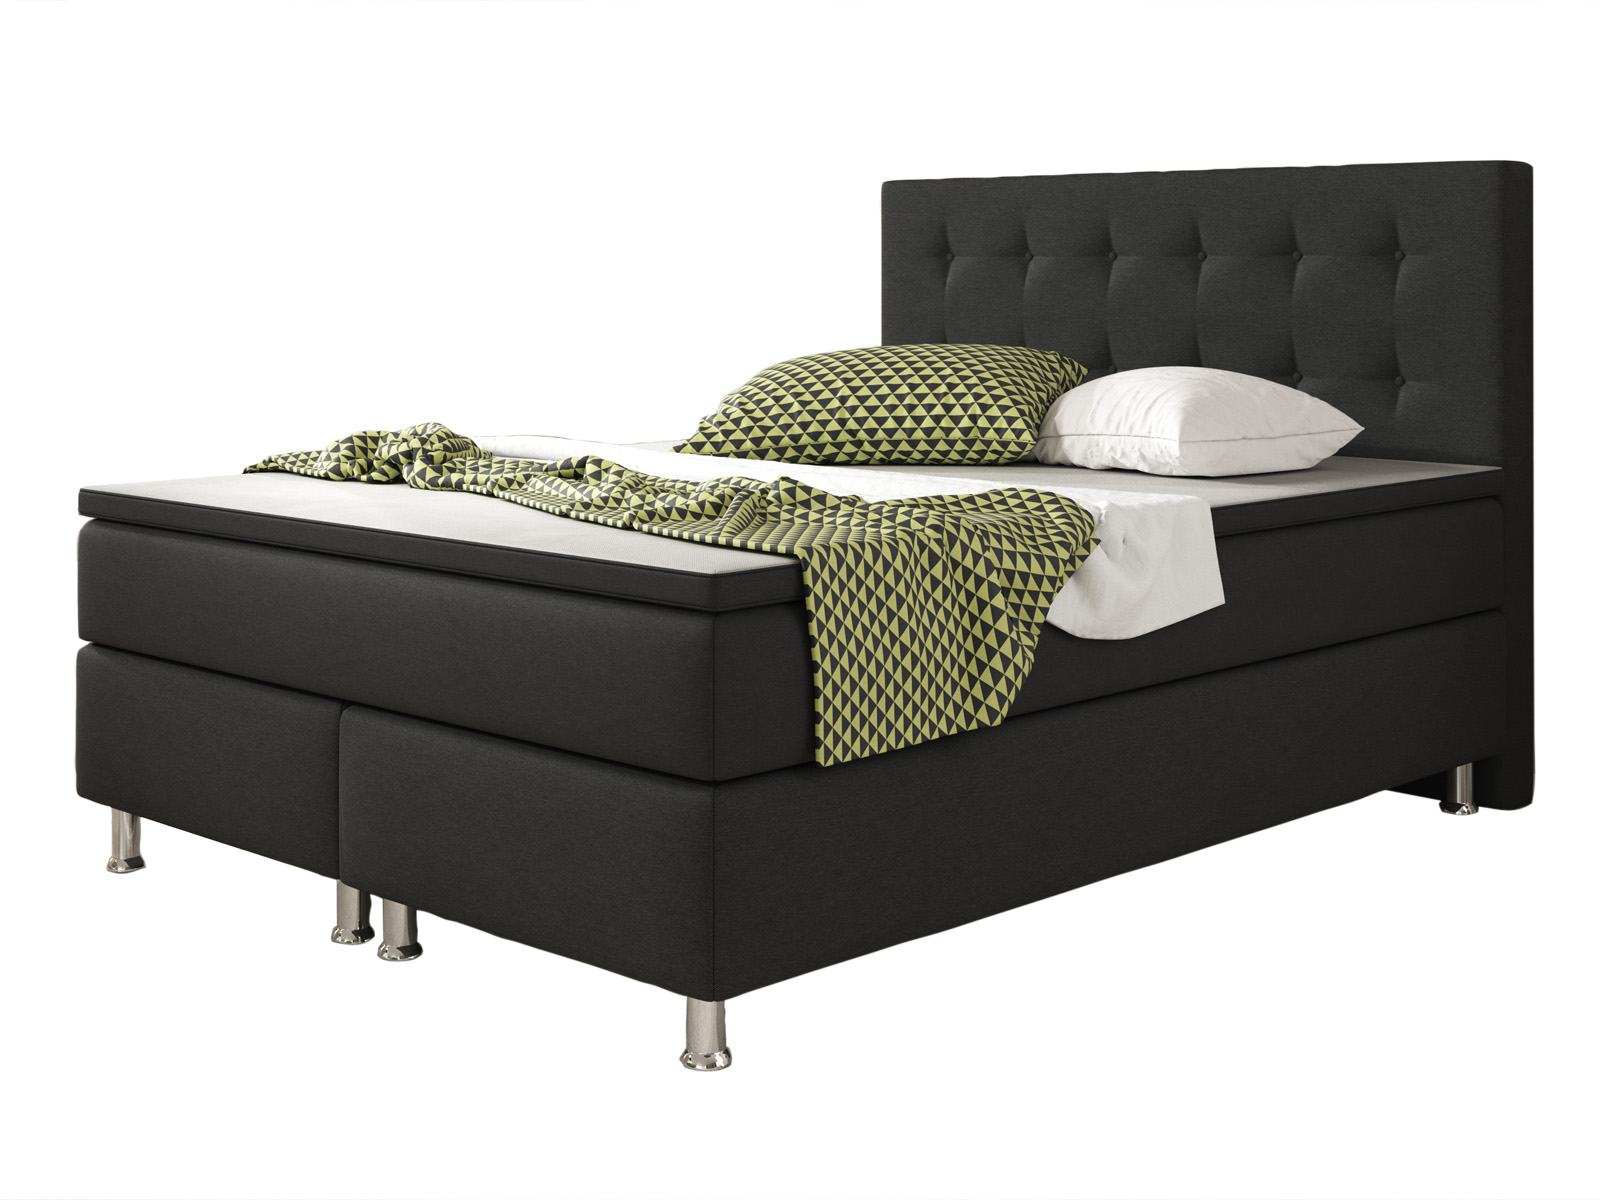 boxspringbett k ln 140x200 cm schwarz webstoff bett. Black Bedroom Furniture Sets. Home Design Ideas